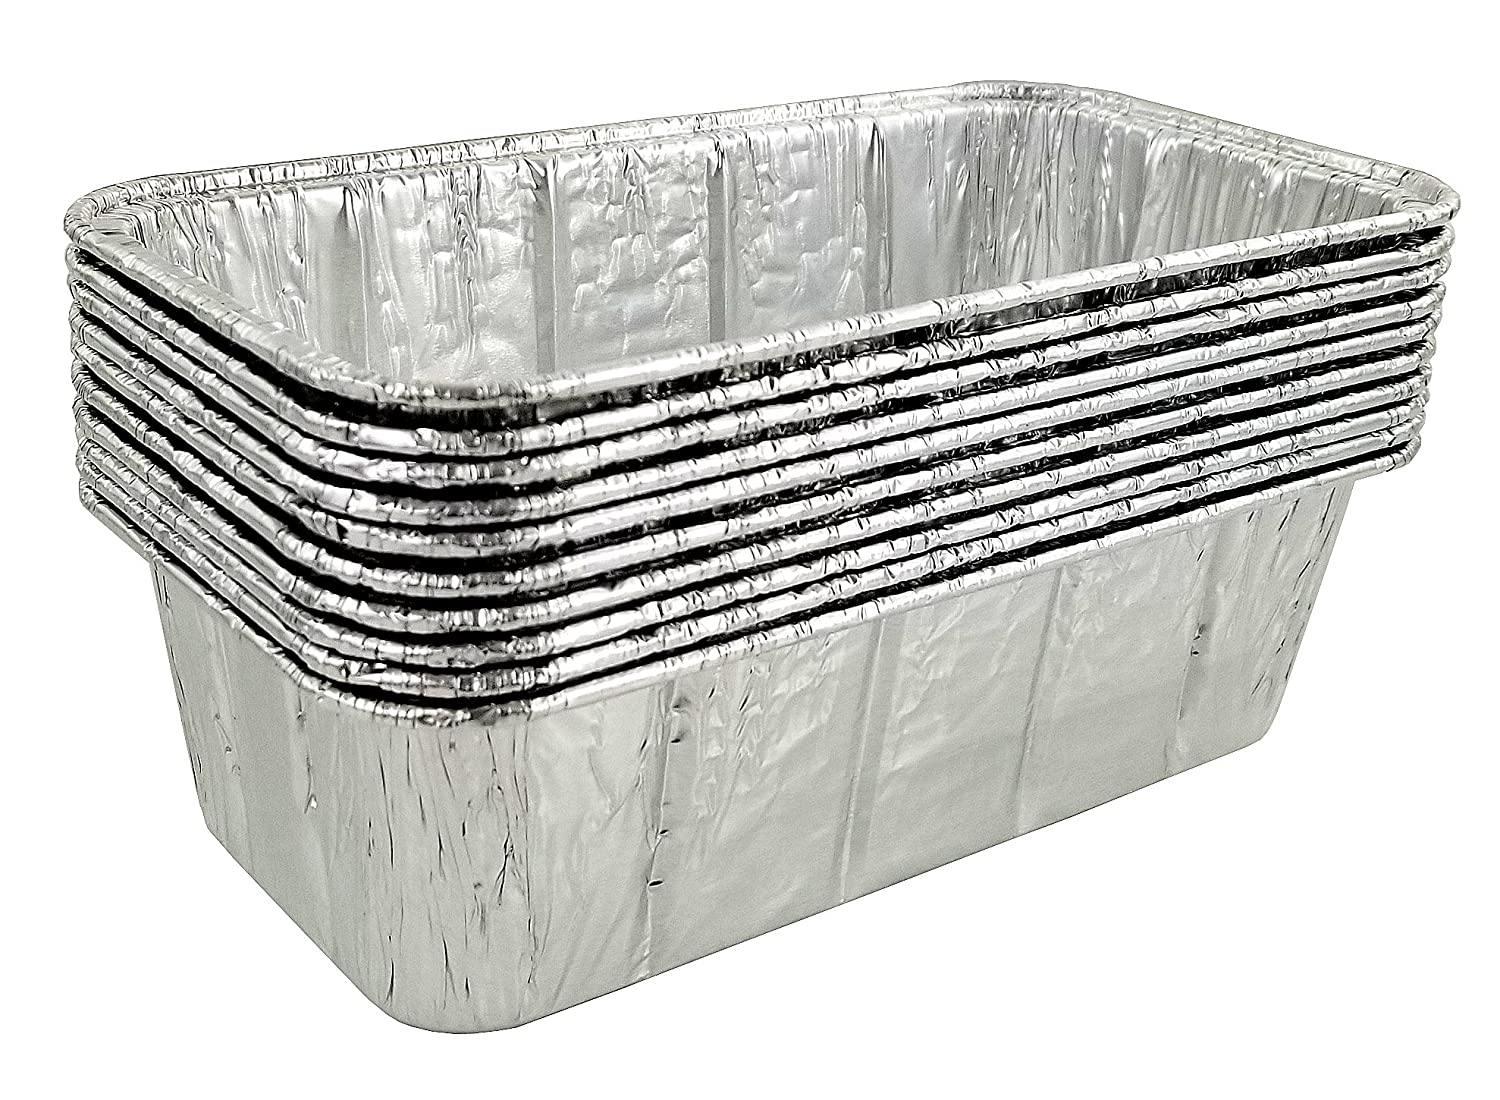 Pack of 10 Pactogo 1.5 lb Made in USA Disposable Aluminum Foil Loaf Bread Baking Pan 8 x 4.25 x 2.34